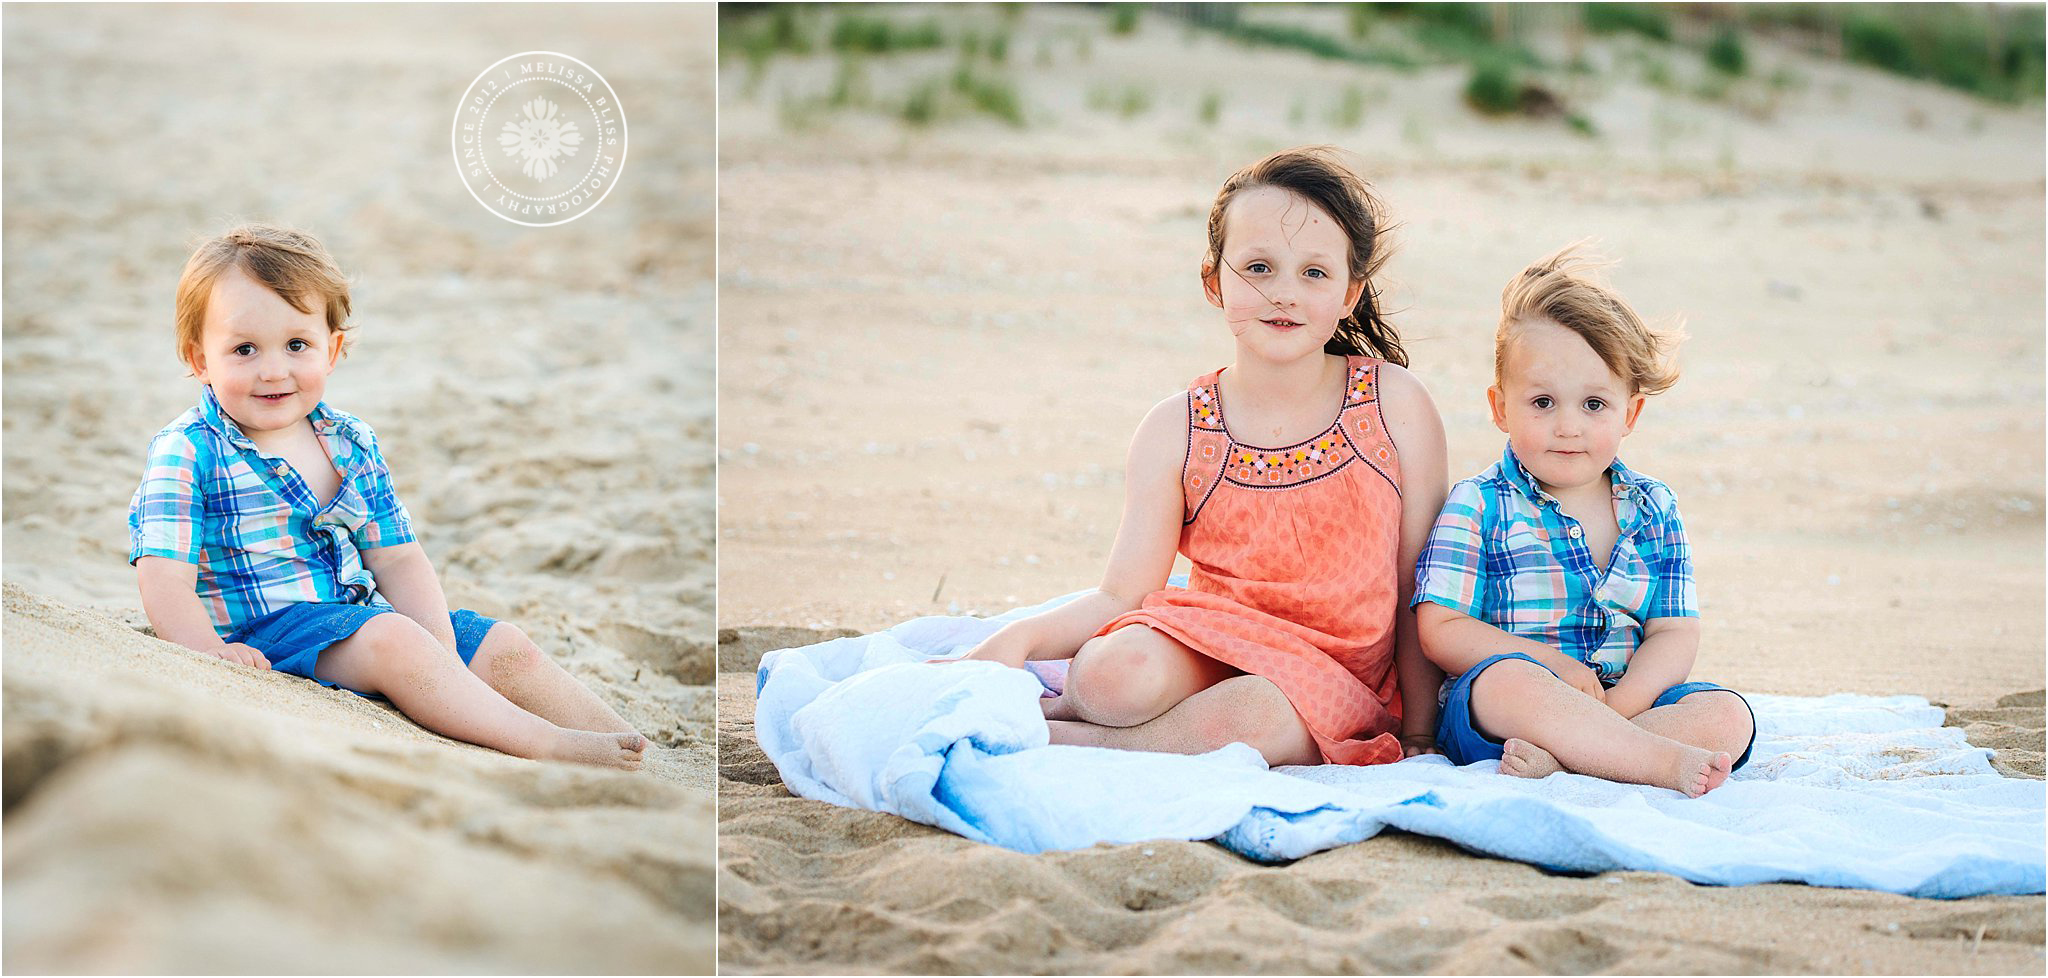 melissa-bliss-photography-family-beach-lifestyle-photographer-sandbridge-virginia-beach-norfolk-chesapeake-va